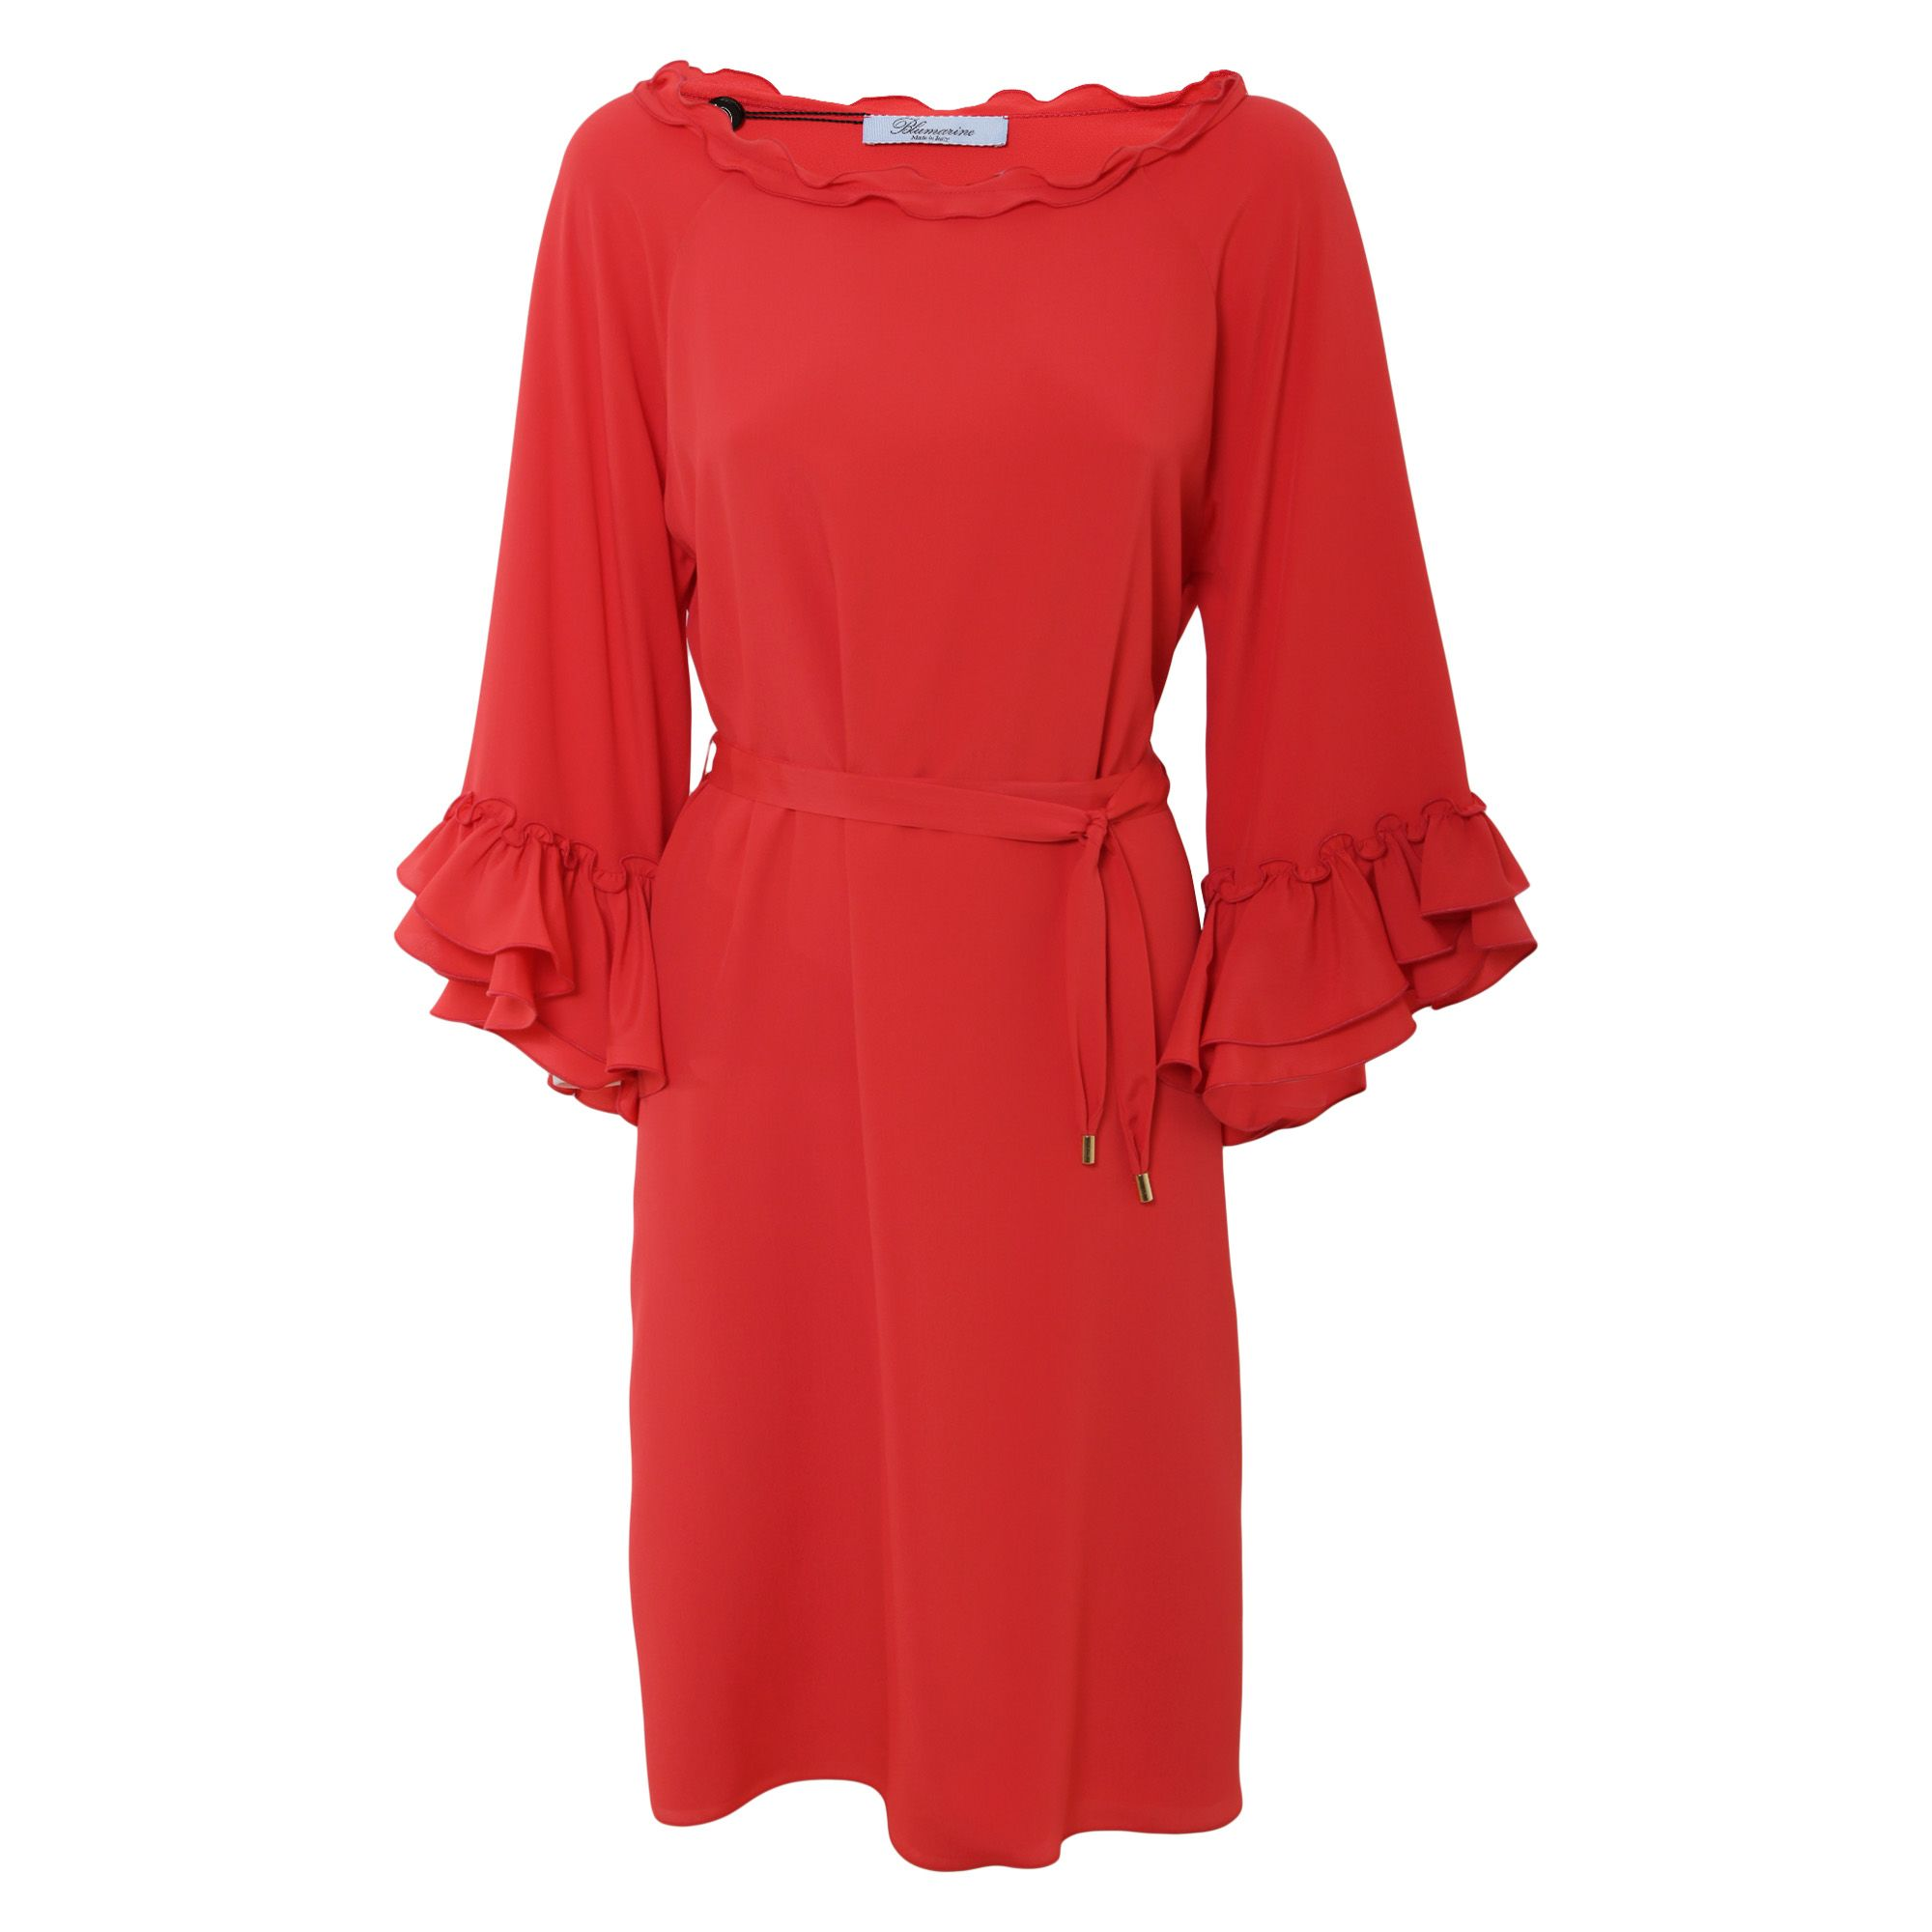 Blumarine Viscose Blend Dress